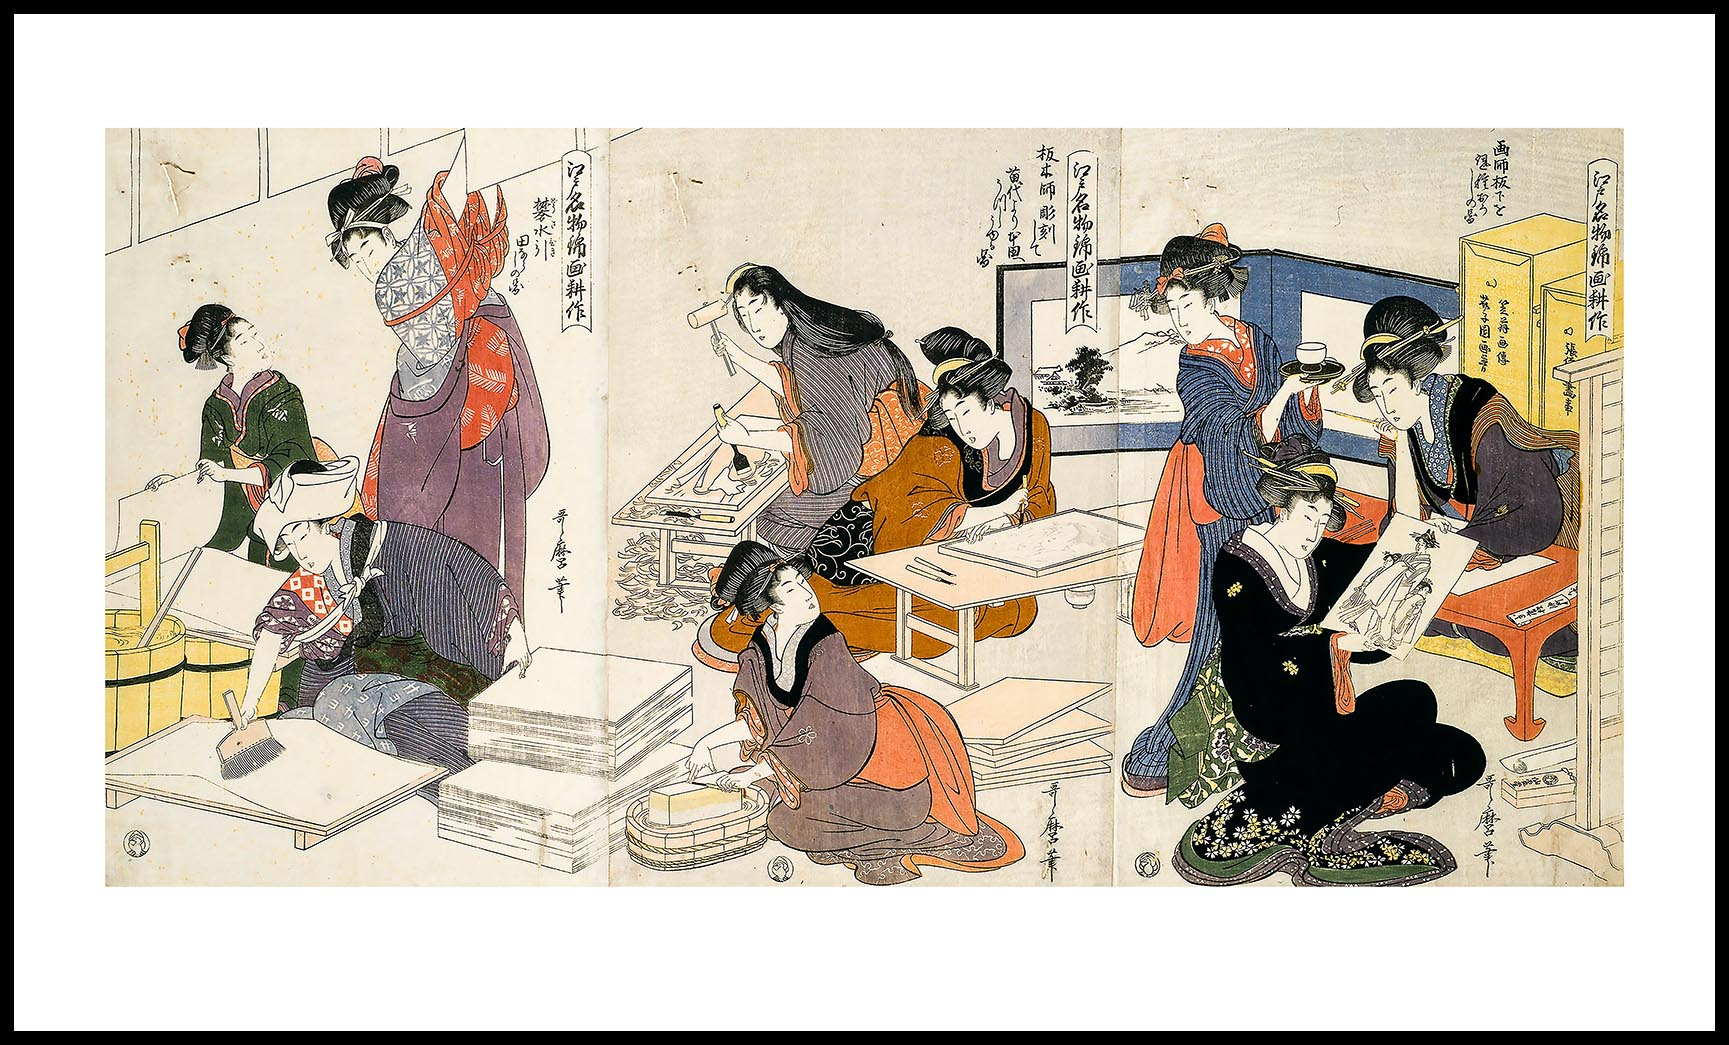 My Introduction to Ukiyo-e and the beginning of Kyoto Prints